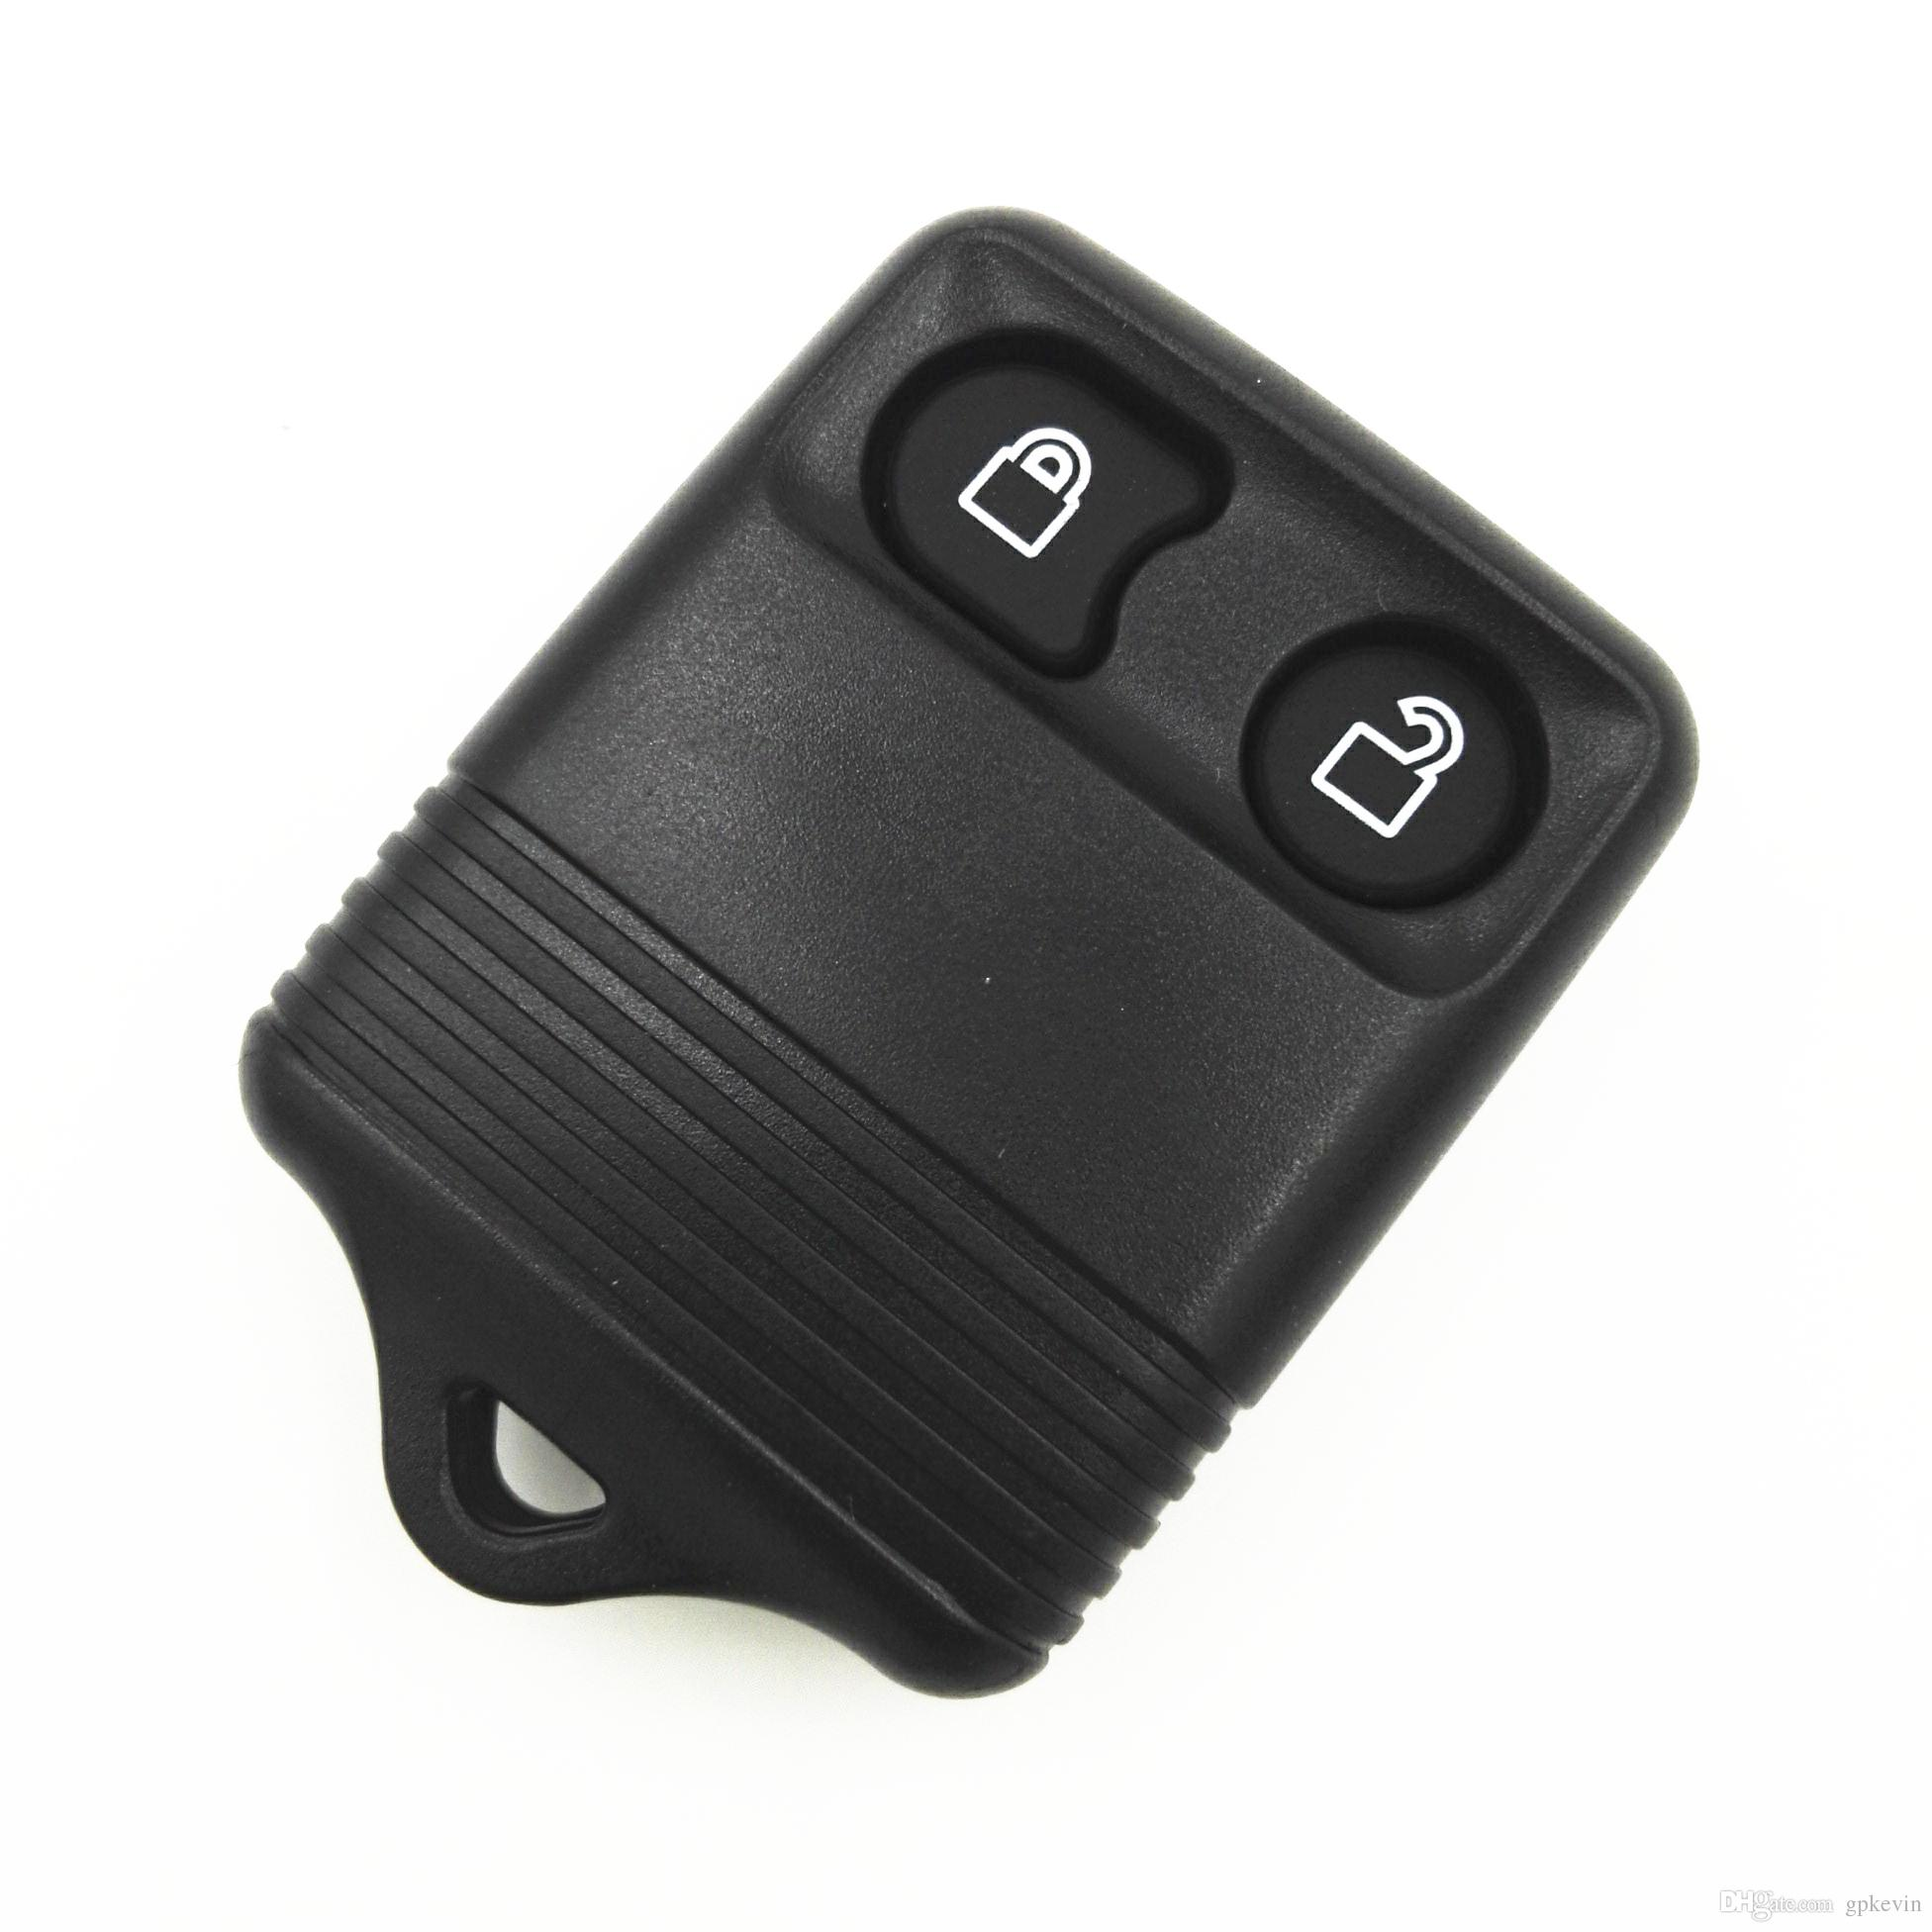 Replacement 2 Buttons Blank Key For Ford Explorer Mercury Mazda Remote Case Cover Fob Key Shell No Chips Inside